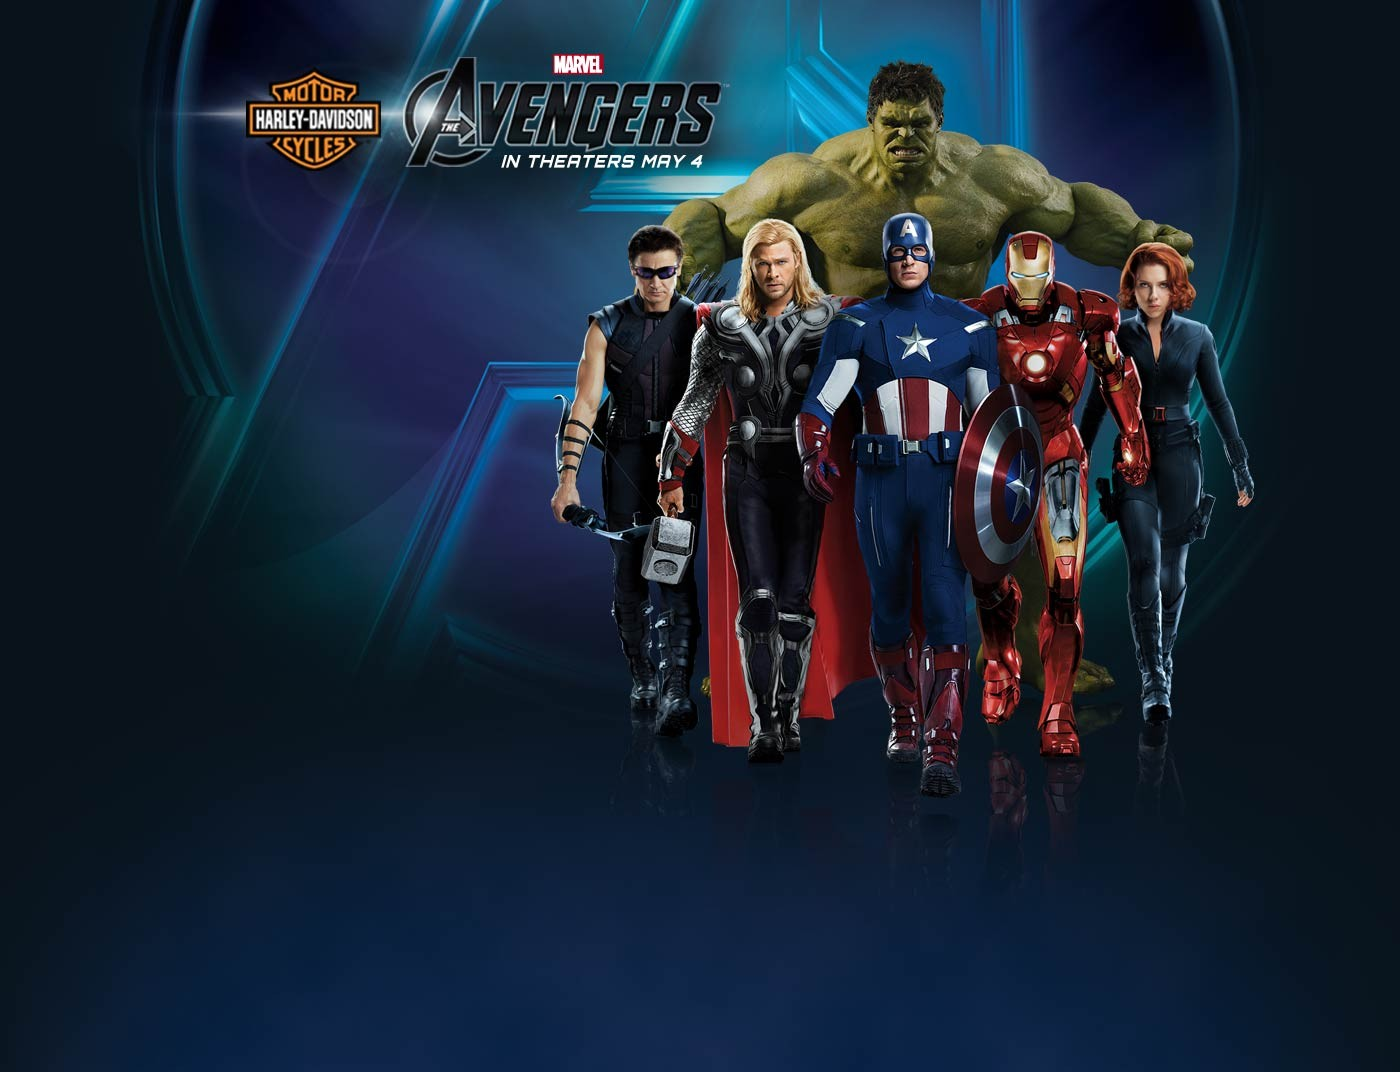 New One-Minute TV Spot For Joss Whedon's THE AVENGERS